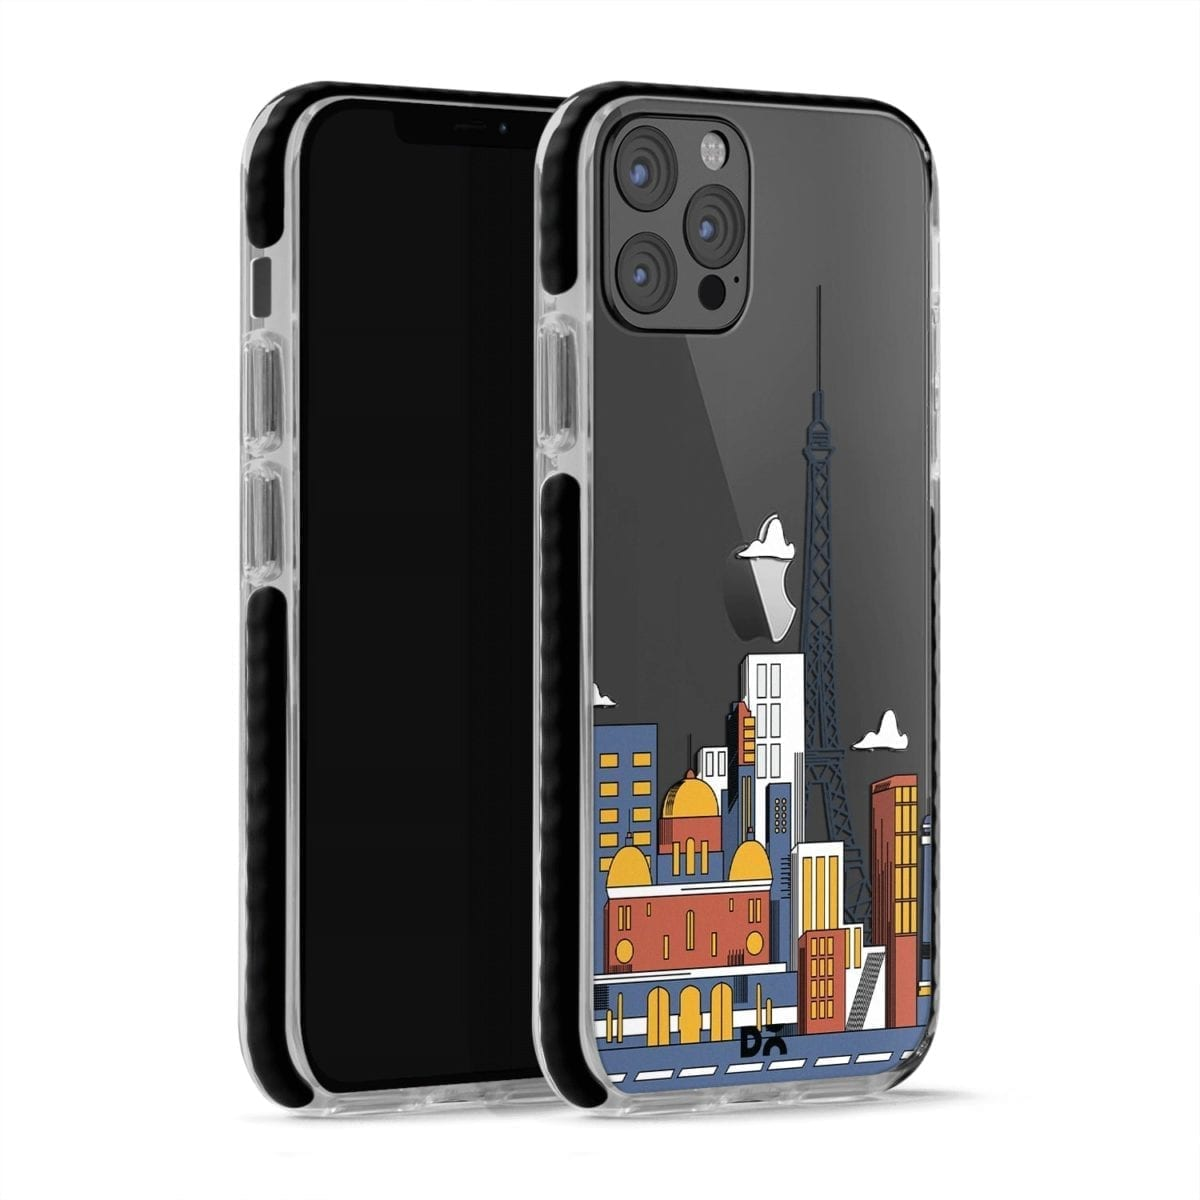 Paris Skyline Clear Stride Case Cover for Apple iPhone 12 Pro and Apple iPhone 12 Pro Max with great design and shock proof | Klippik | Online Shopping | Kuwait UAE Saudi